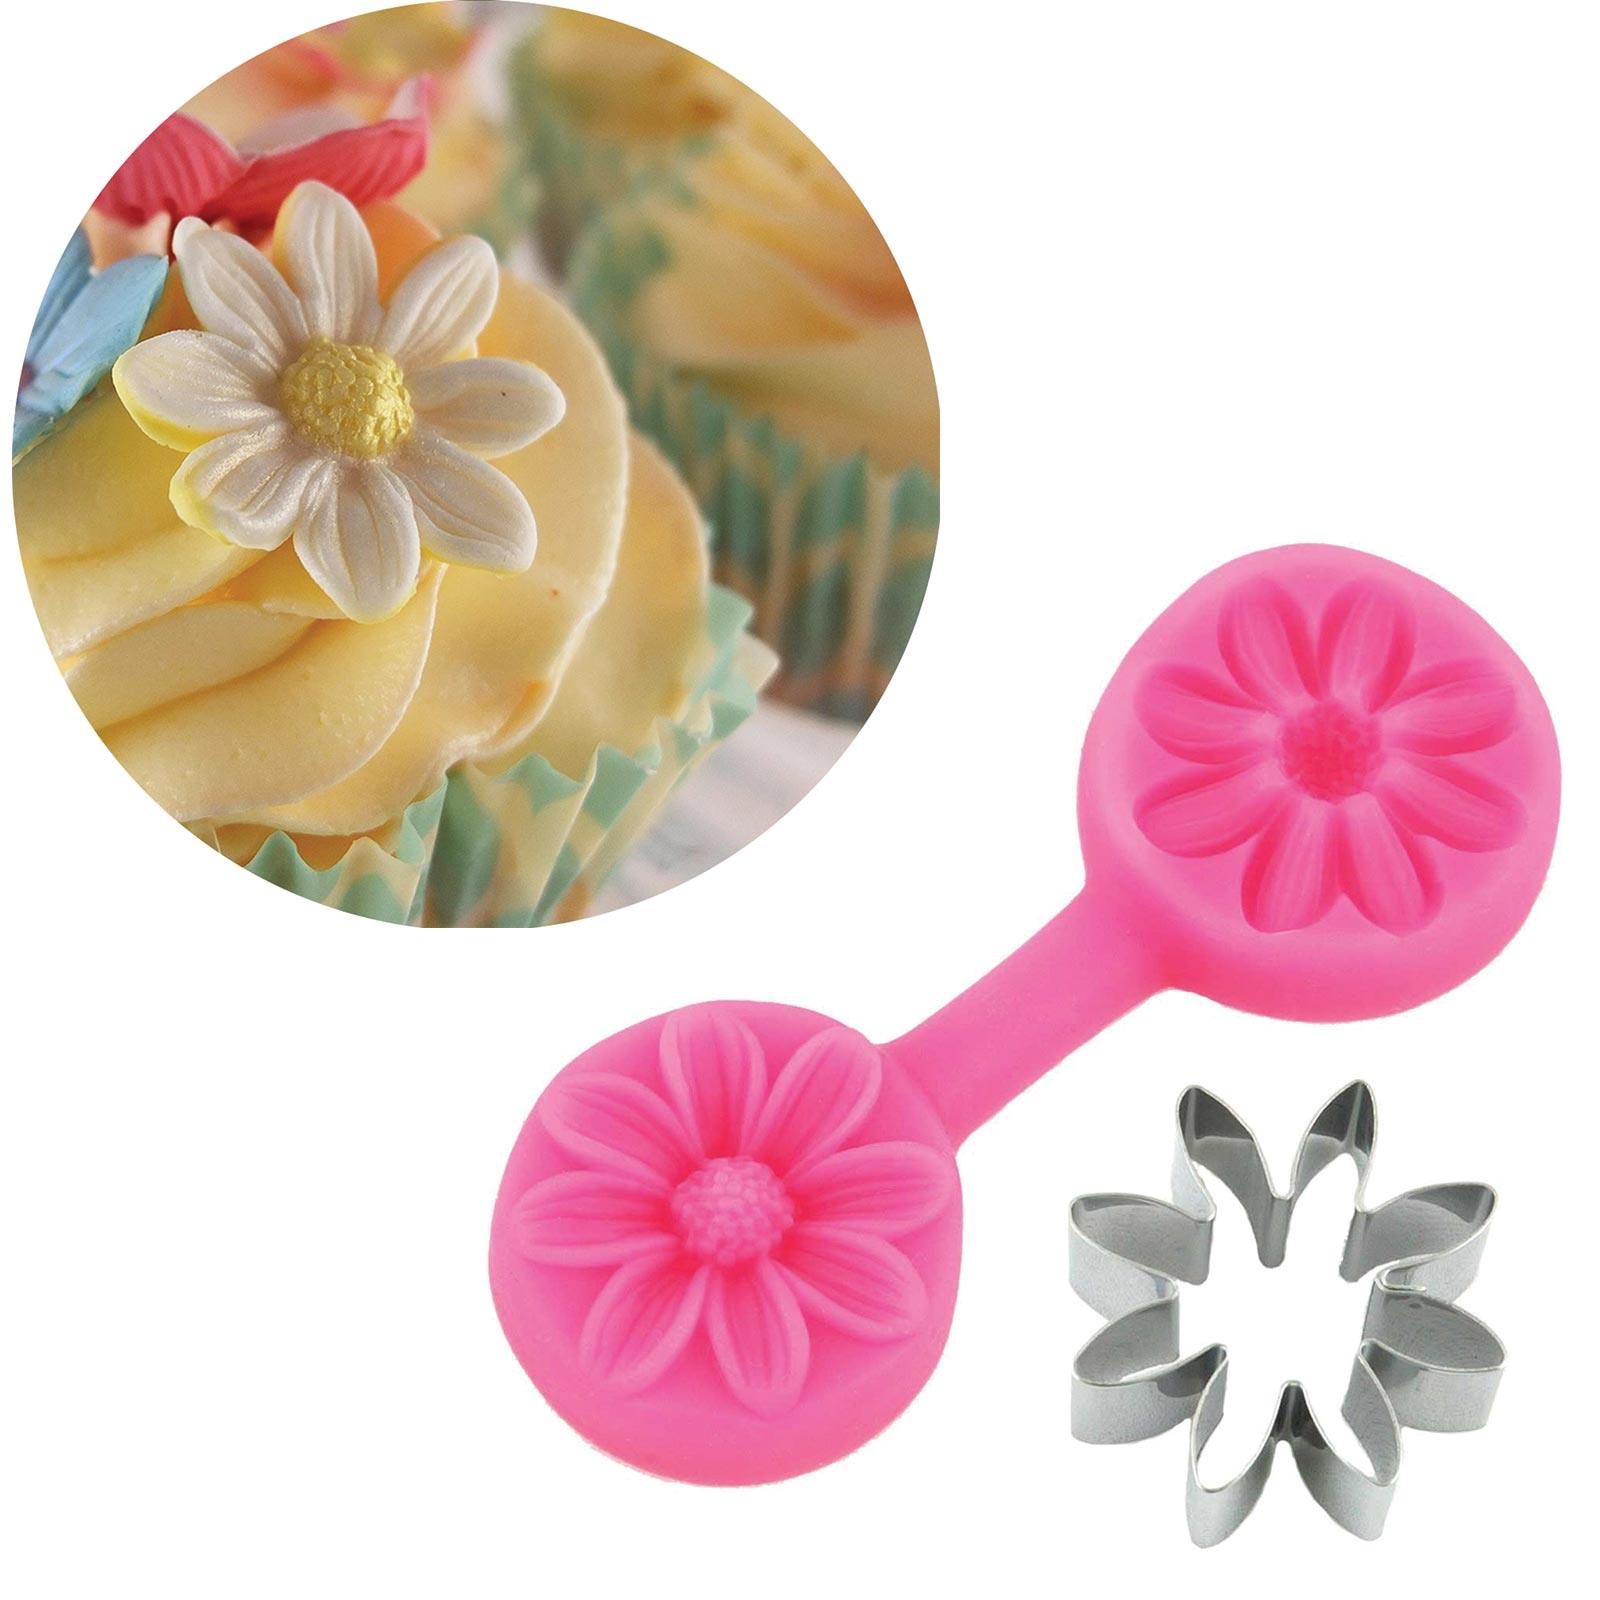 Daisy Cutter & Mould Set - Blossom Sugar Art cake_decorating_mold craft_mold icing_flowers